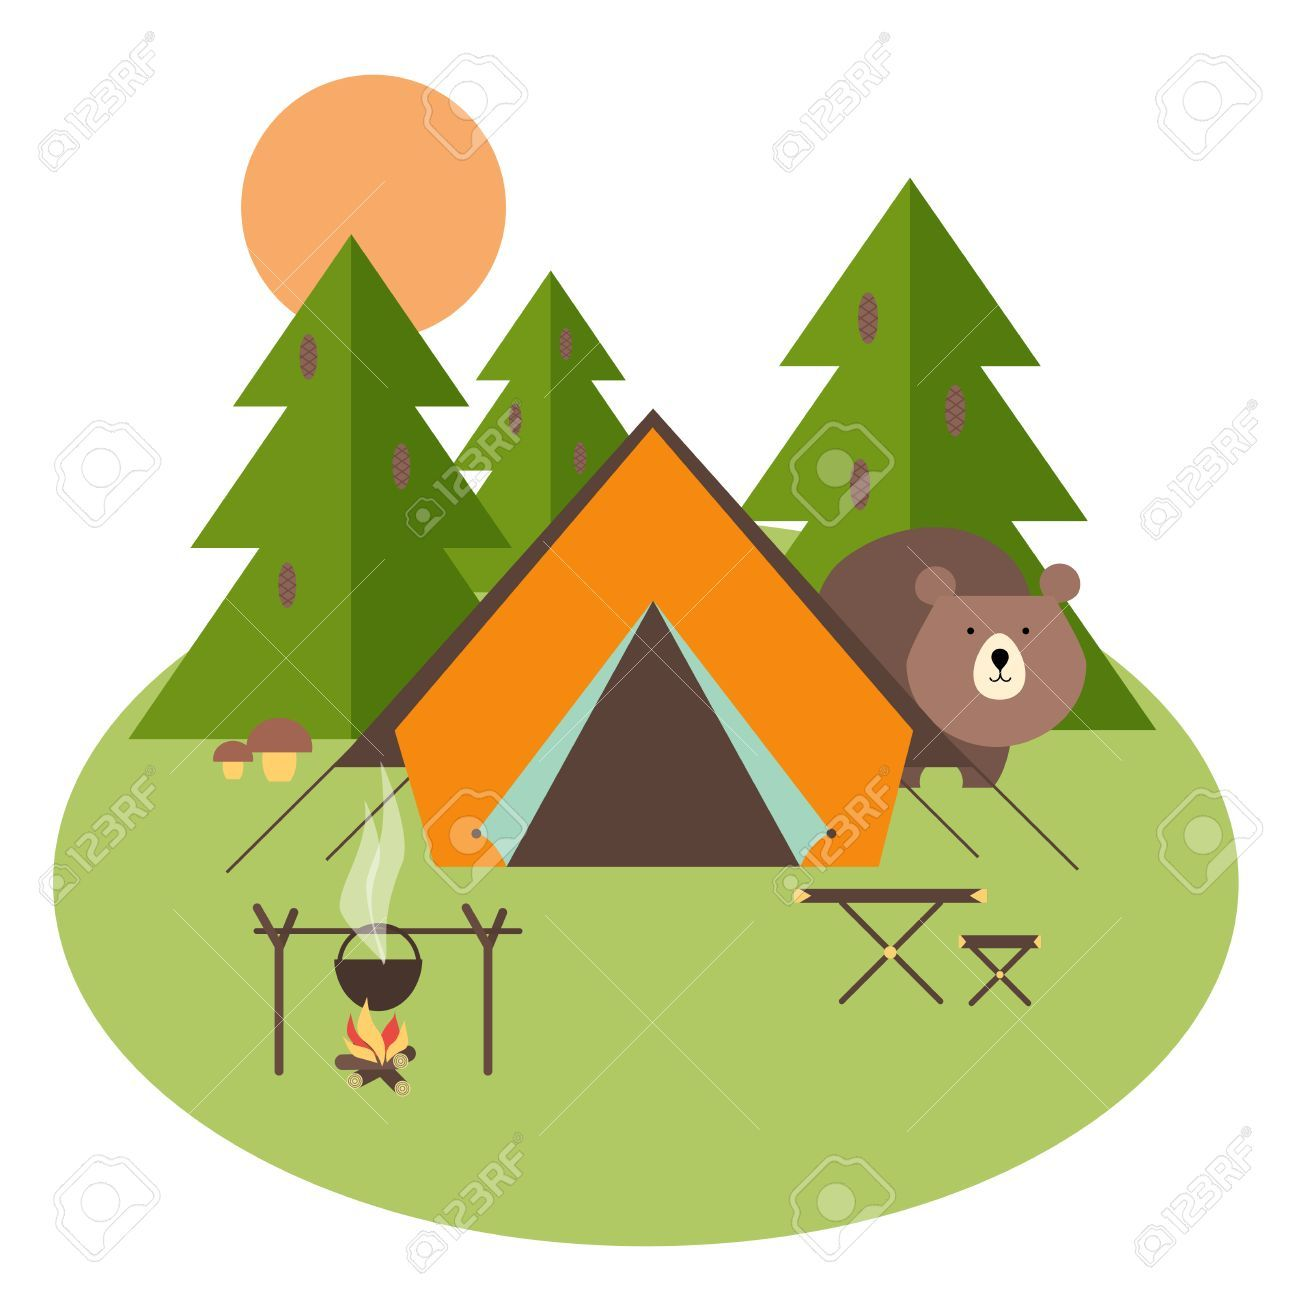 Camping Tent Stock Vector Illustration And Royalty Free Camping Tent Clipart Camping Drawing Camping Clipart Camping Crafts